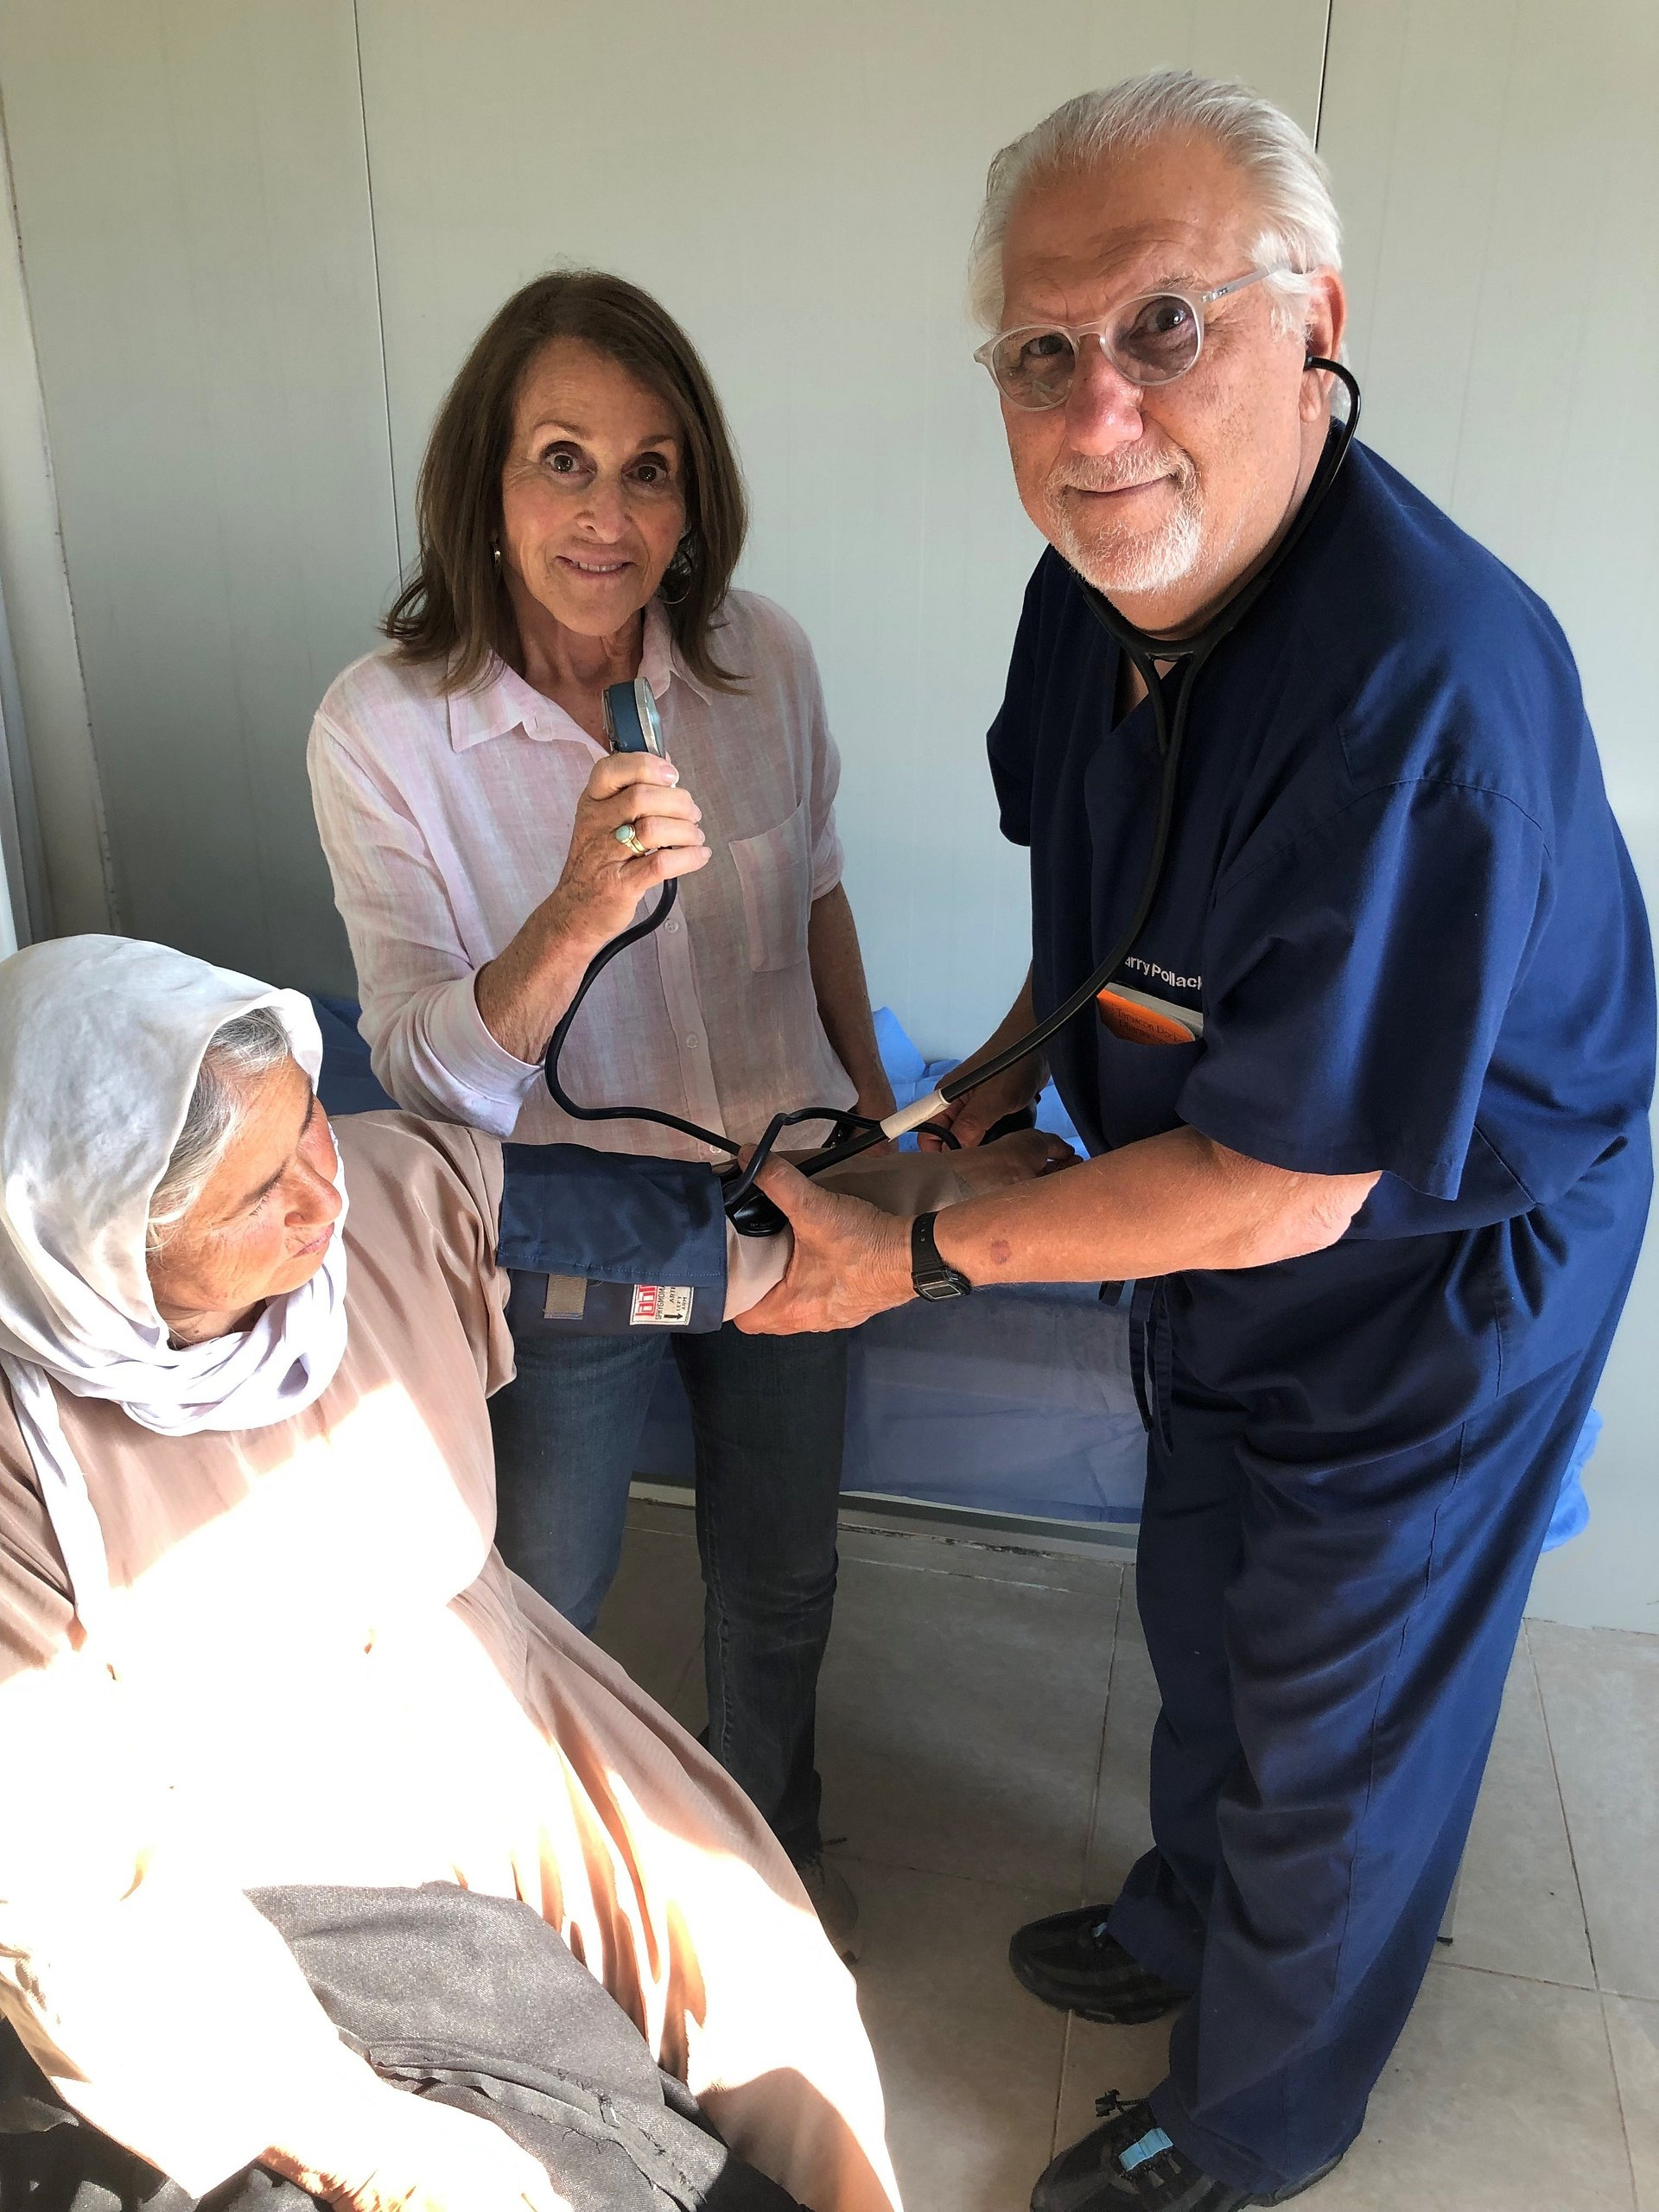 Coldwell Banker's Margaret Pollack Returns from Week-Long Medical Trip in Iraq with Health-E-Charity